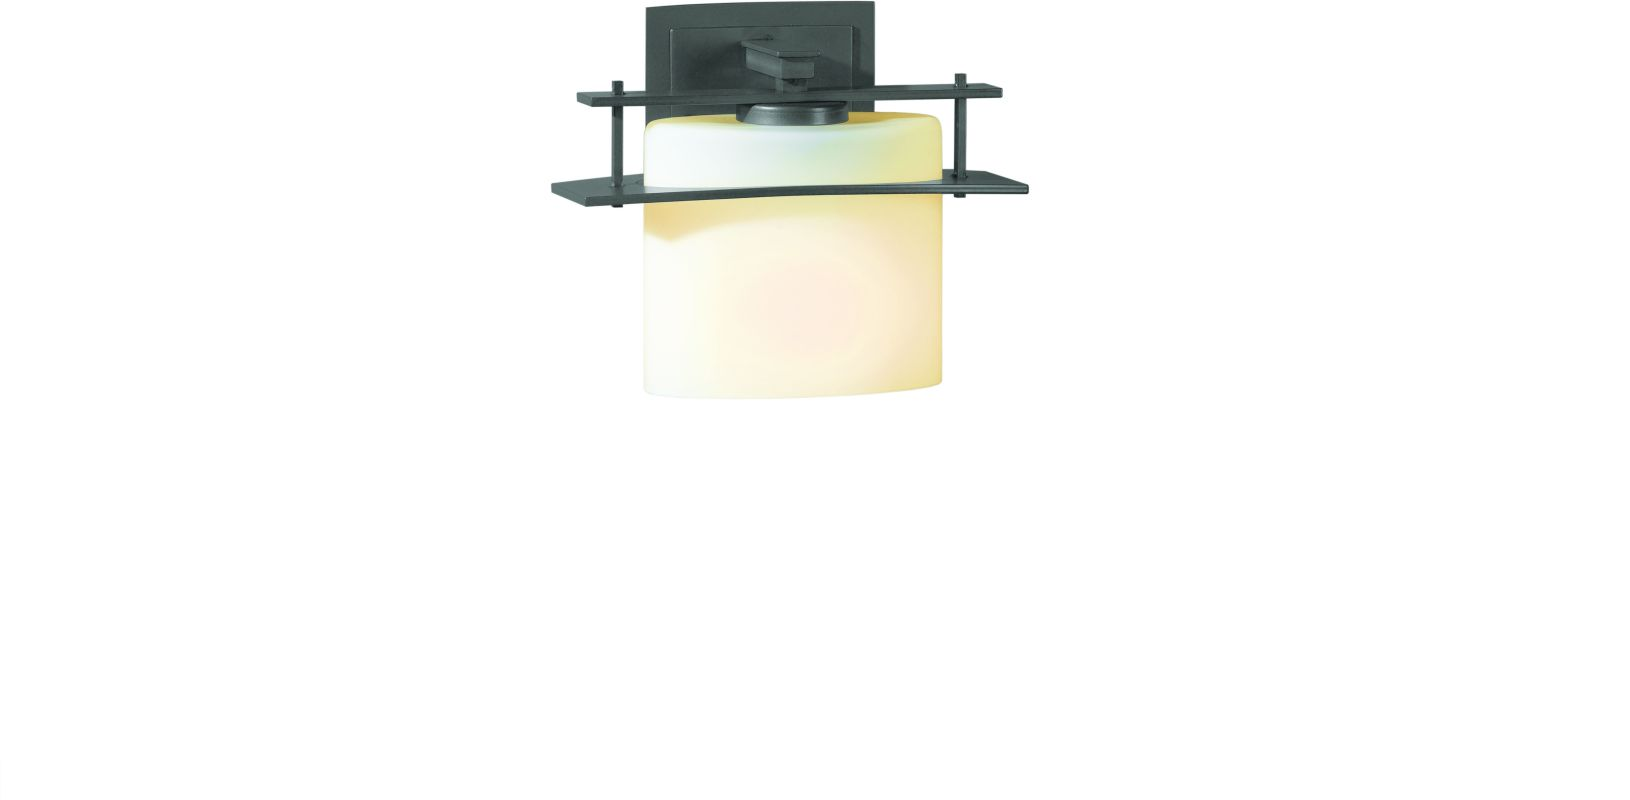 Hubbardton Forge 207521 Single Light Down Lighting ADA Wall Sconce Sale $457.60 ITEM#: 1163976 MODEL# :207521-08 :